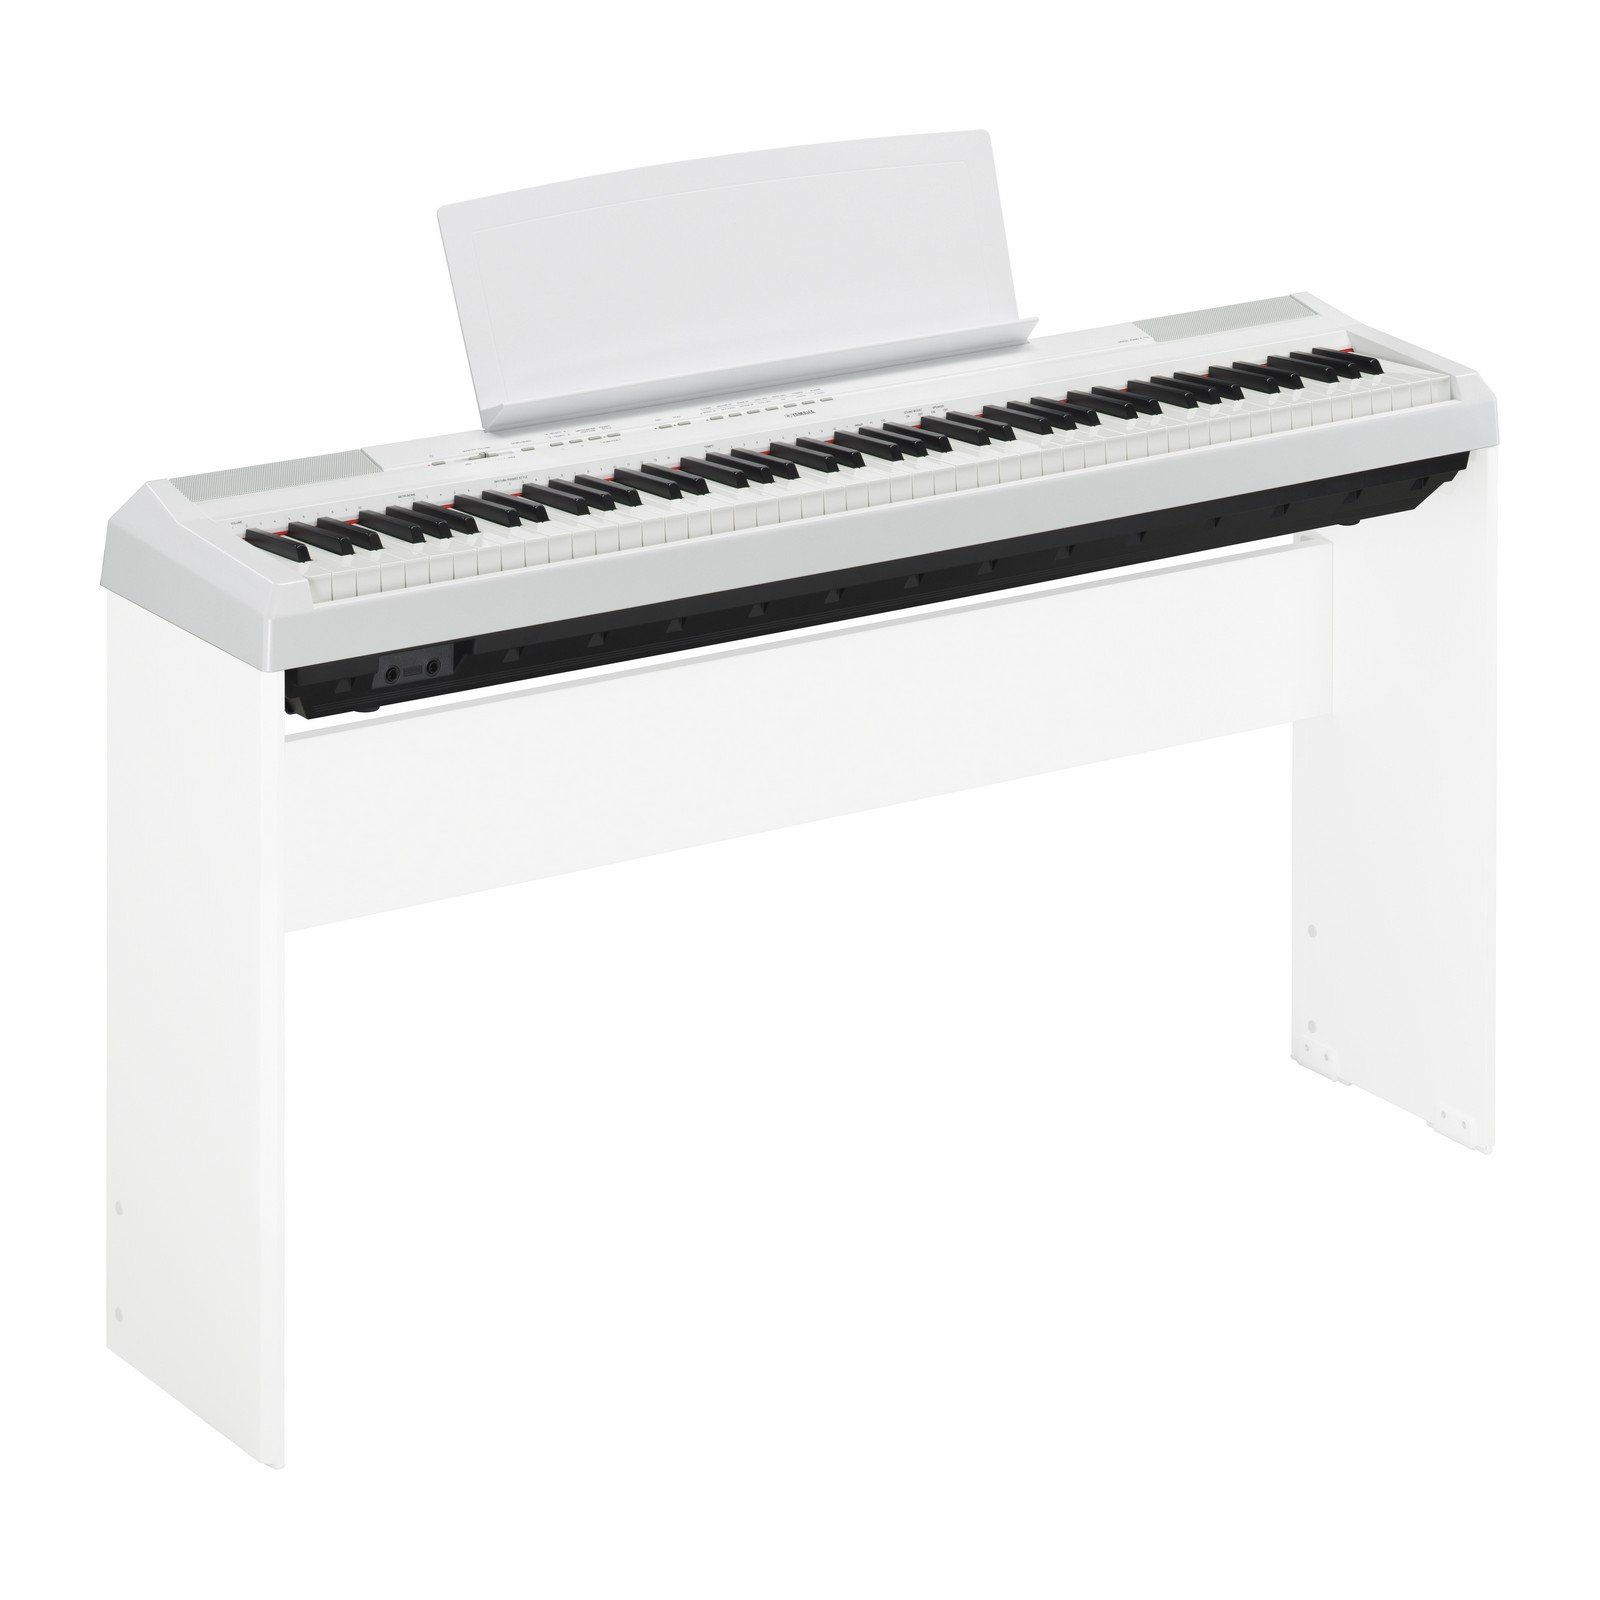 Yamaha P115 88-Key Weighted Action Digital Piano with Sustain Pedal, White by YAMAHA (Image #3)